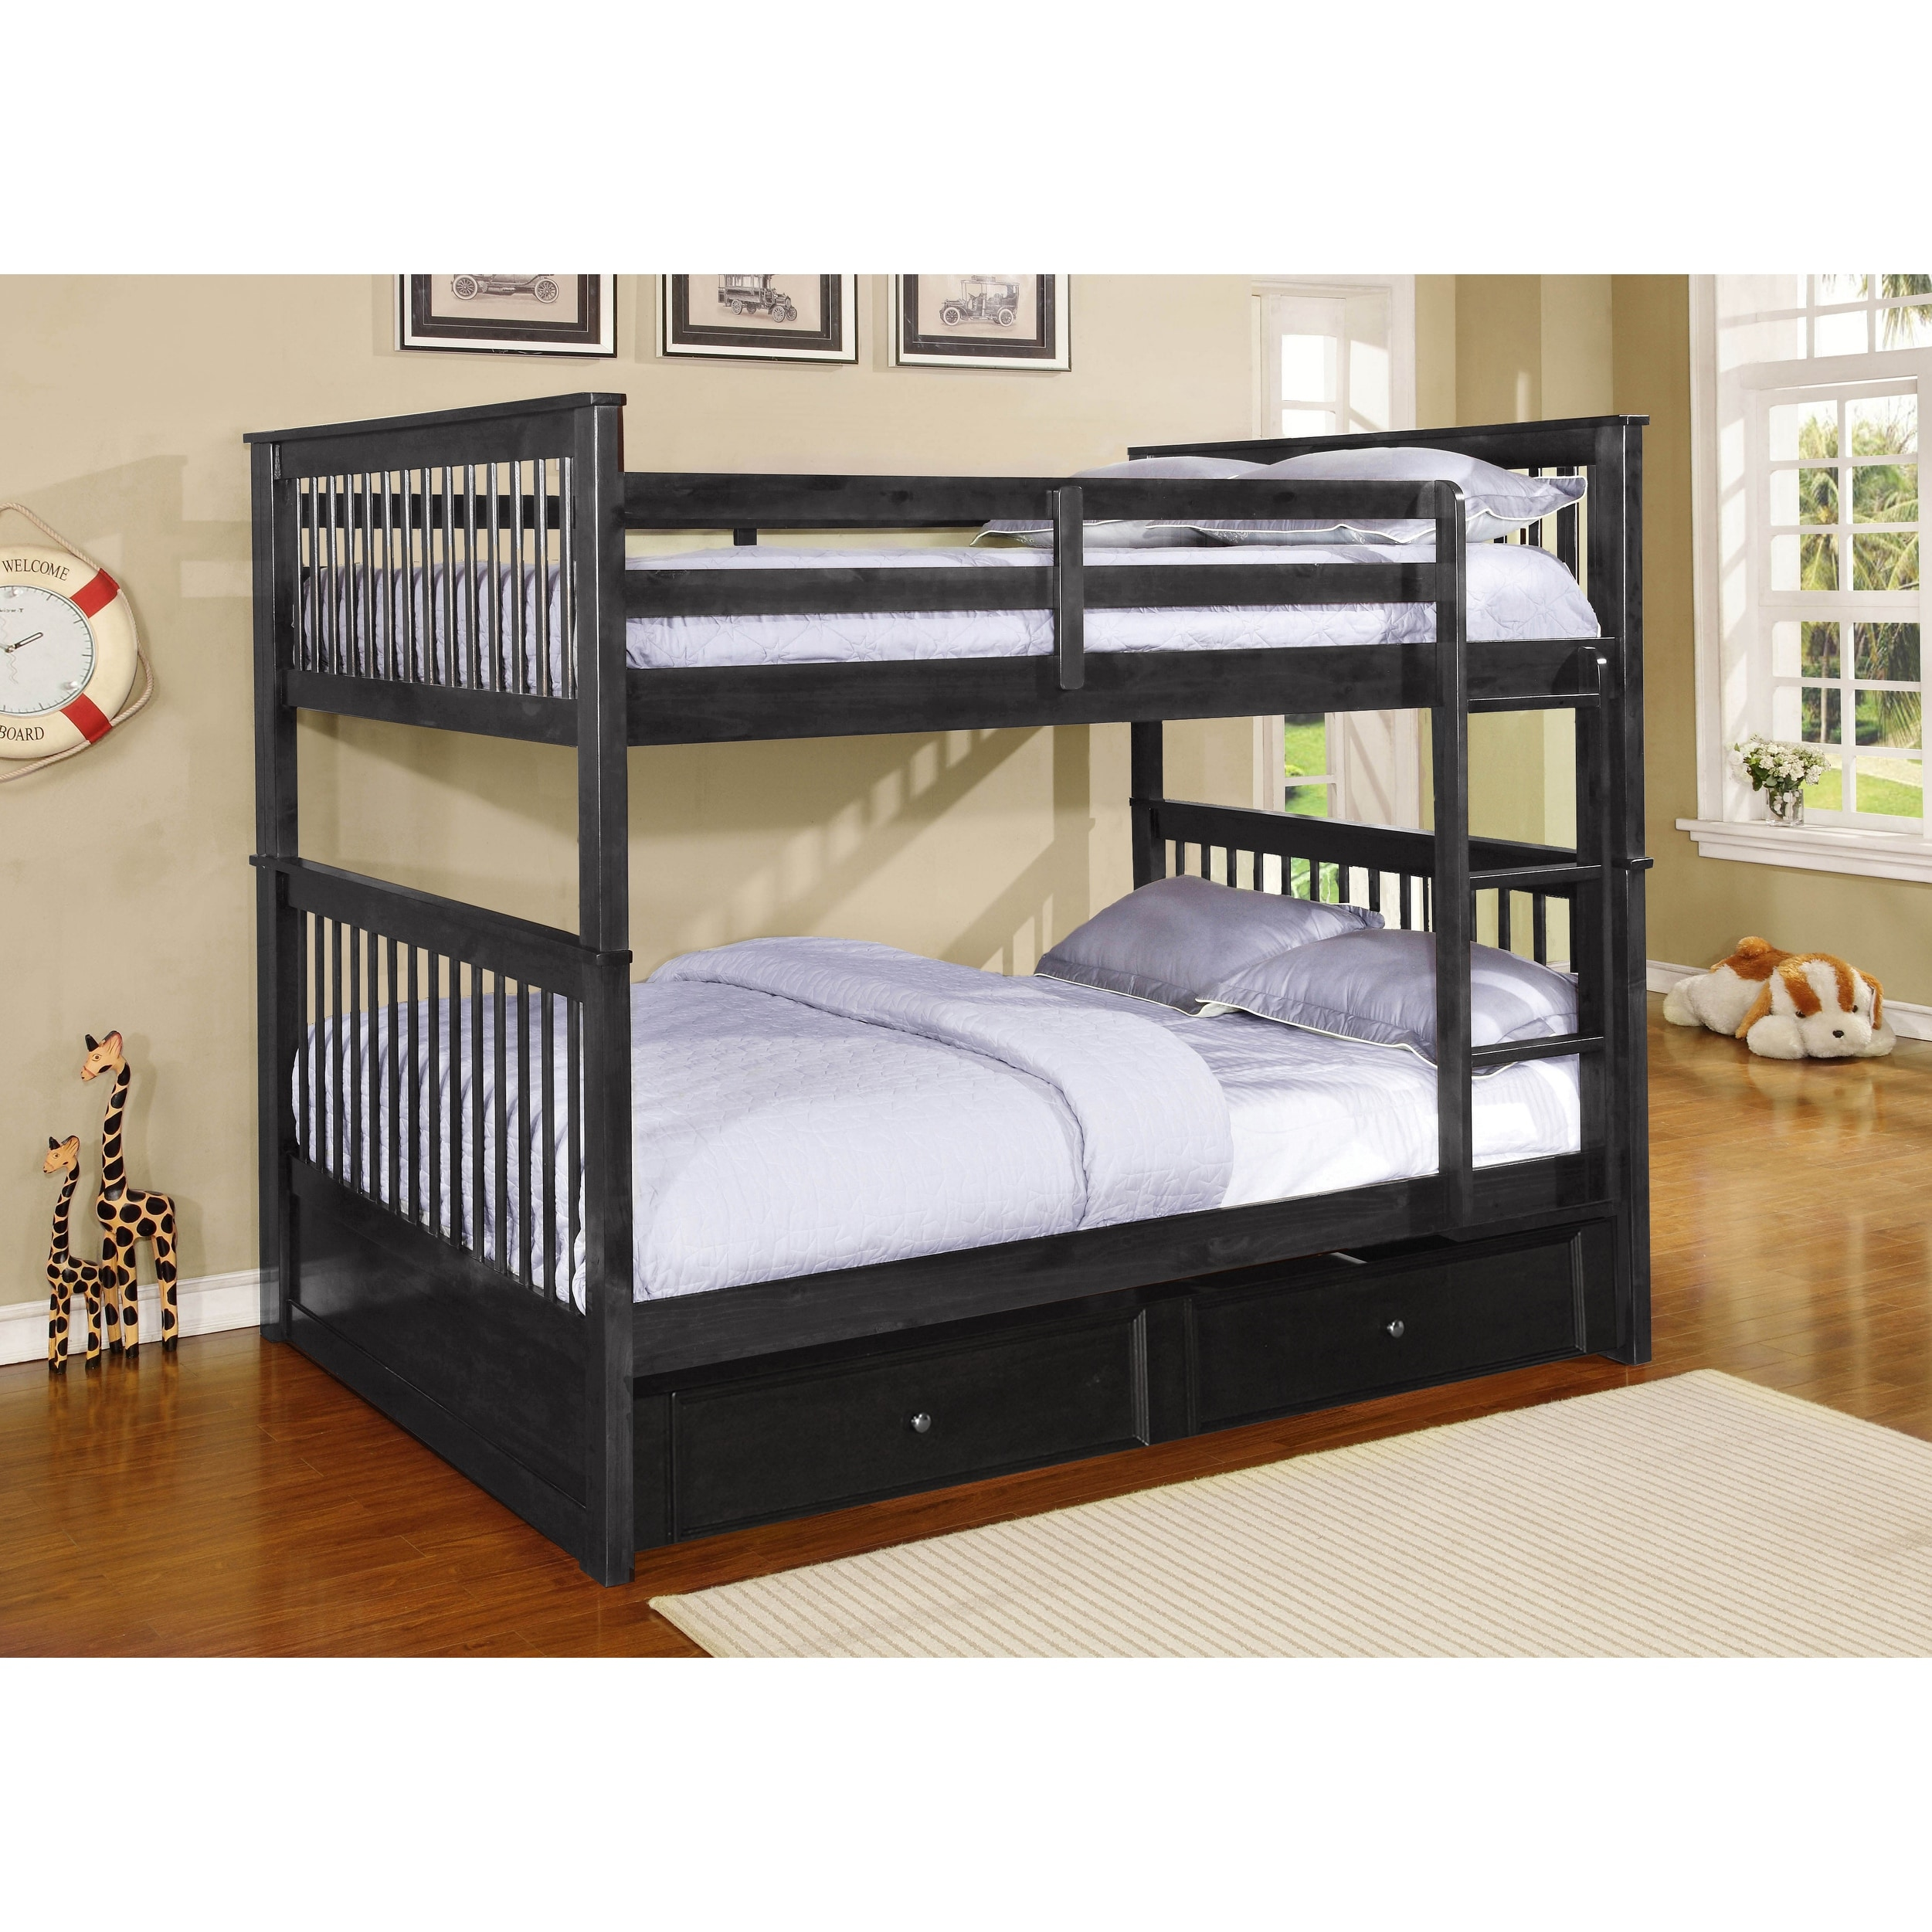 Image of: Shop Black Friday Deals On Paloma Convertible Full Over Full Bunk Bed Optional Trundle Storage Overstock 11511481